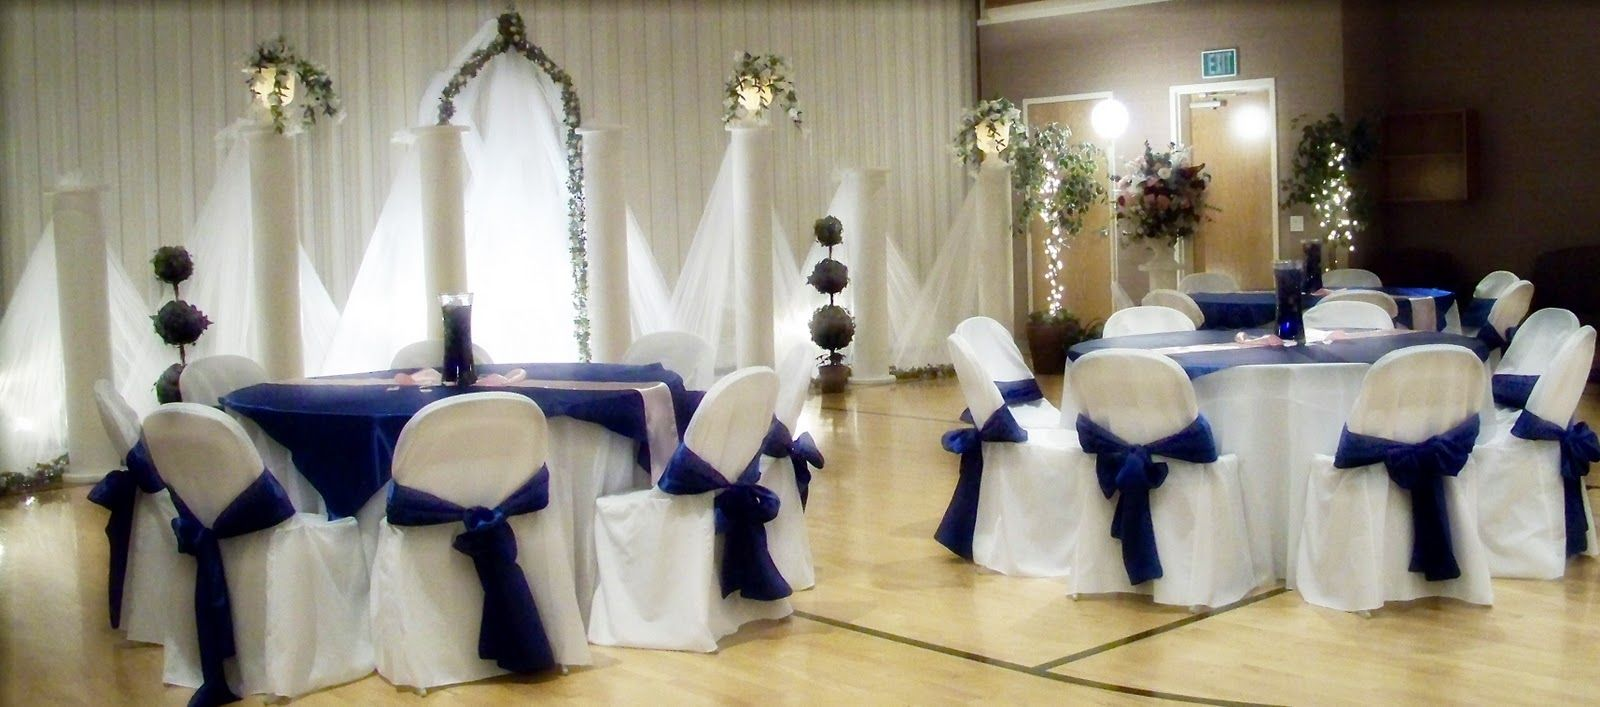 Wedding Table Royal Blue Wedding Table Decorations silver and light blue decor beautiful tulle cross backdrop royal here are a few wedding decoration ideas pictures from events i have done wedding